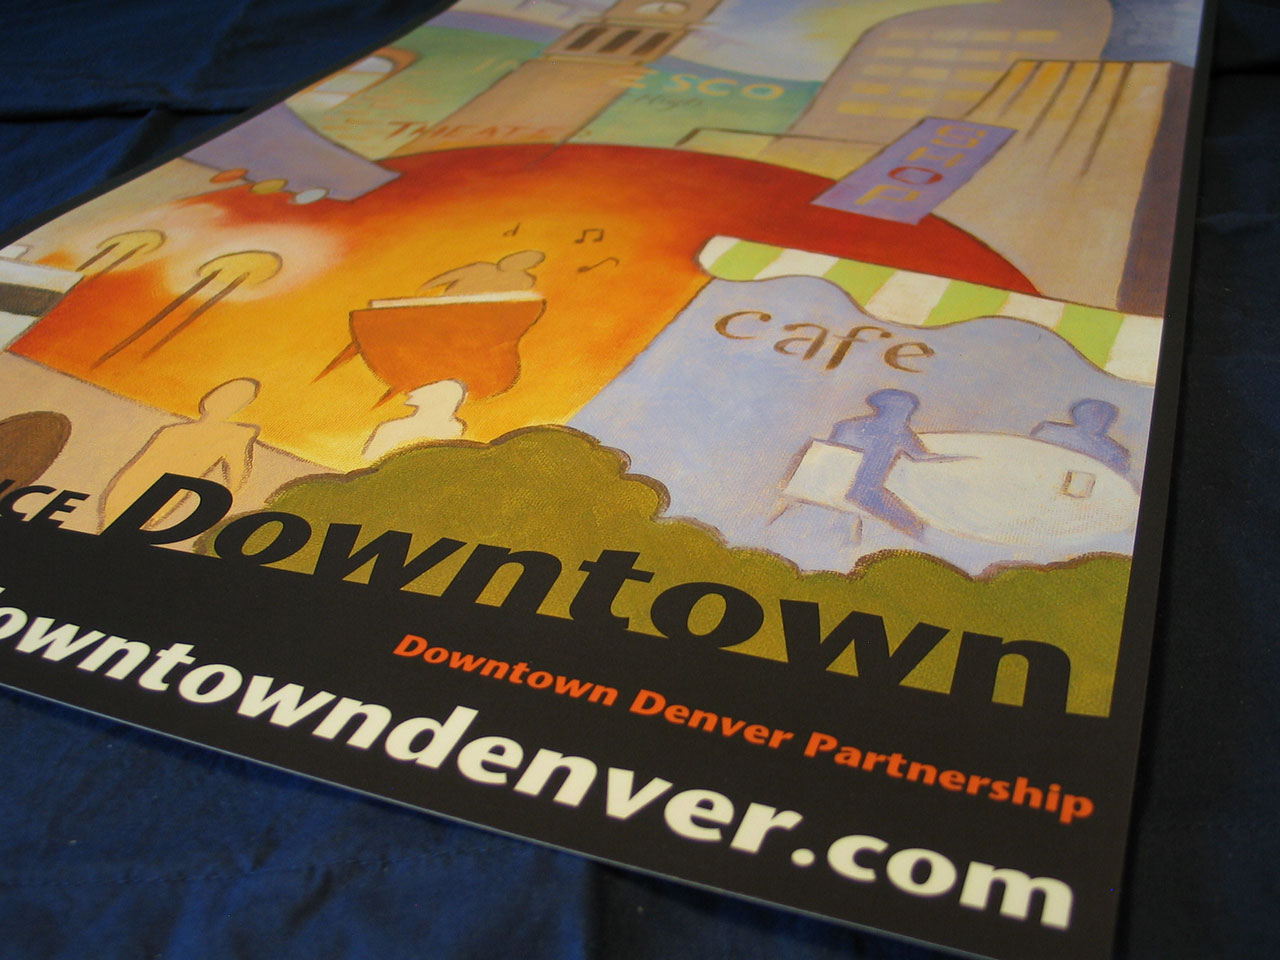 Downtown Denver Partnership Poster